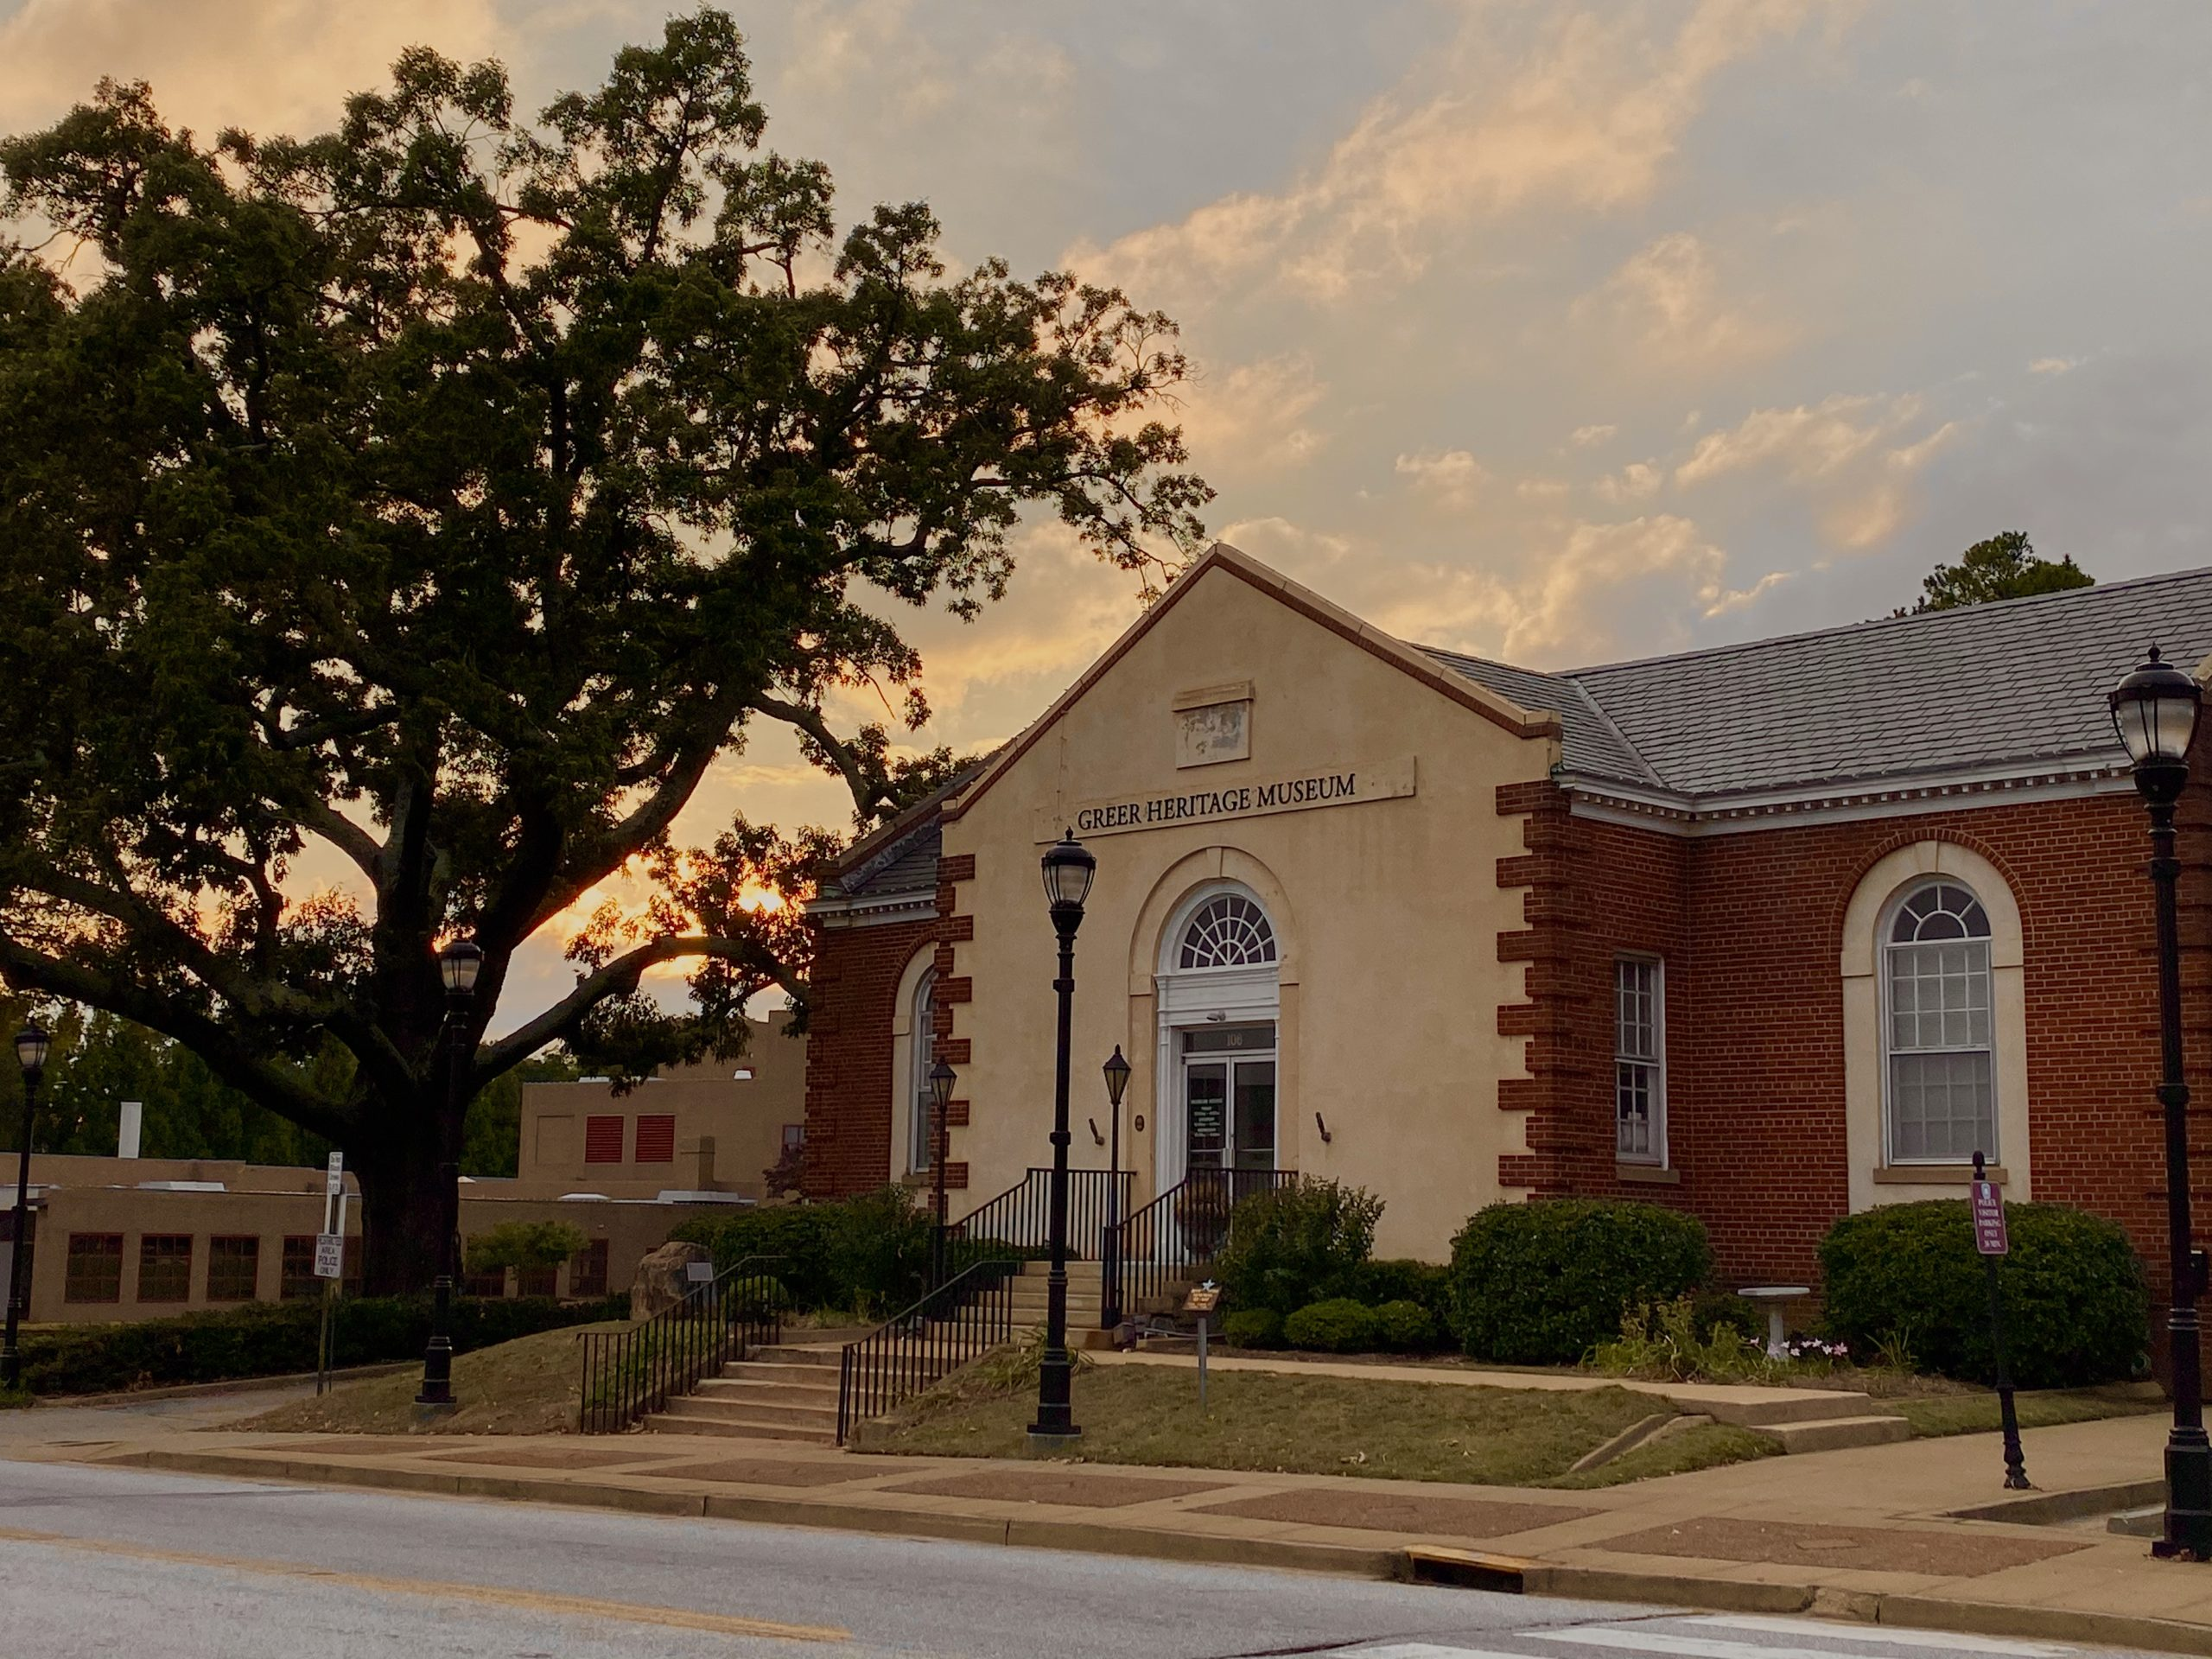 Greer Heritage Museum building at sunset